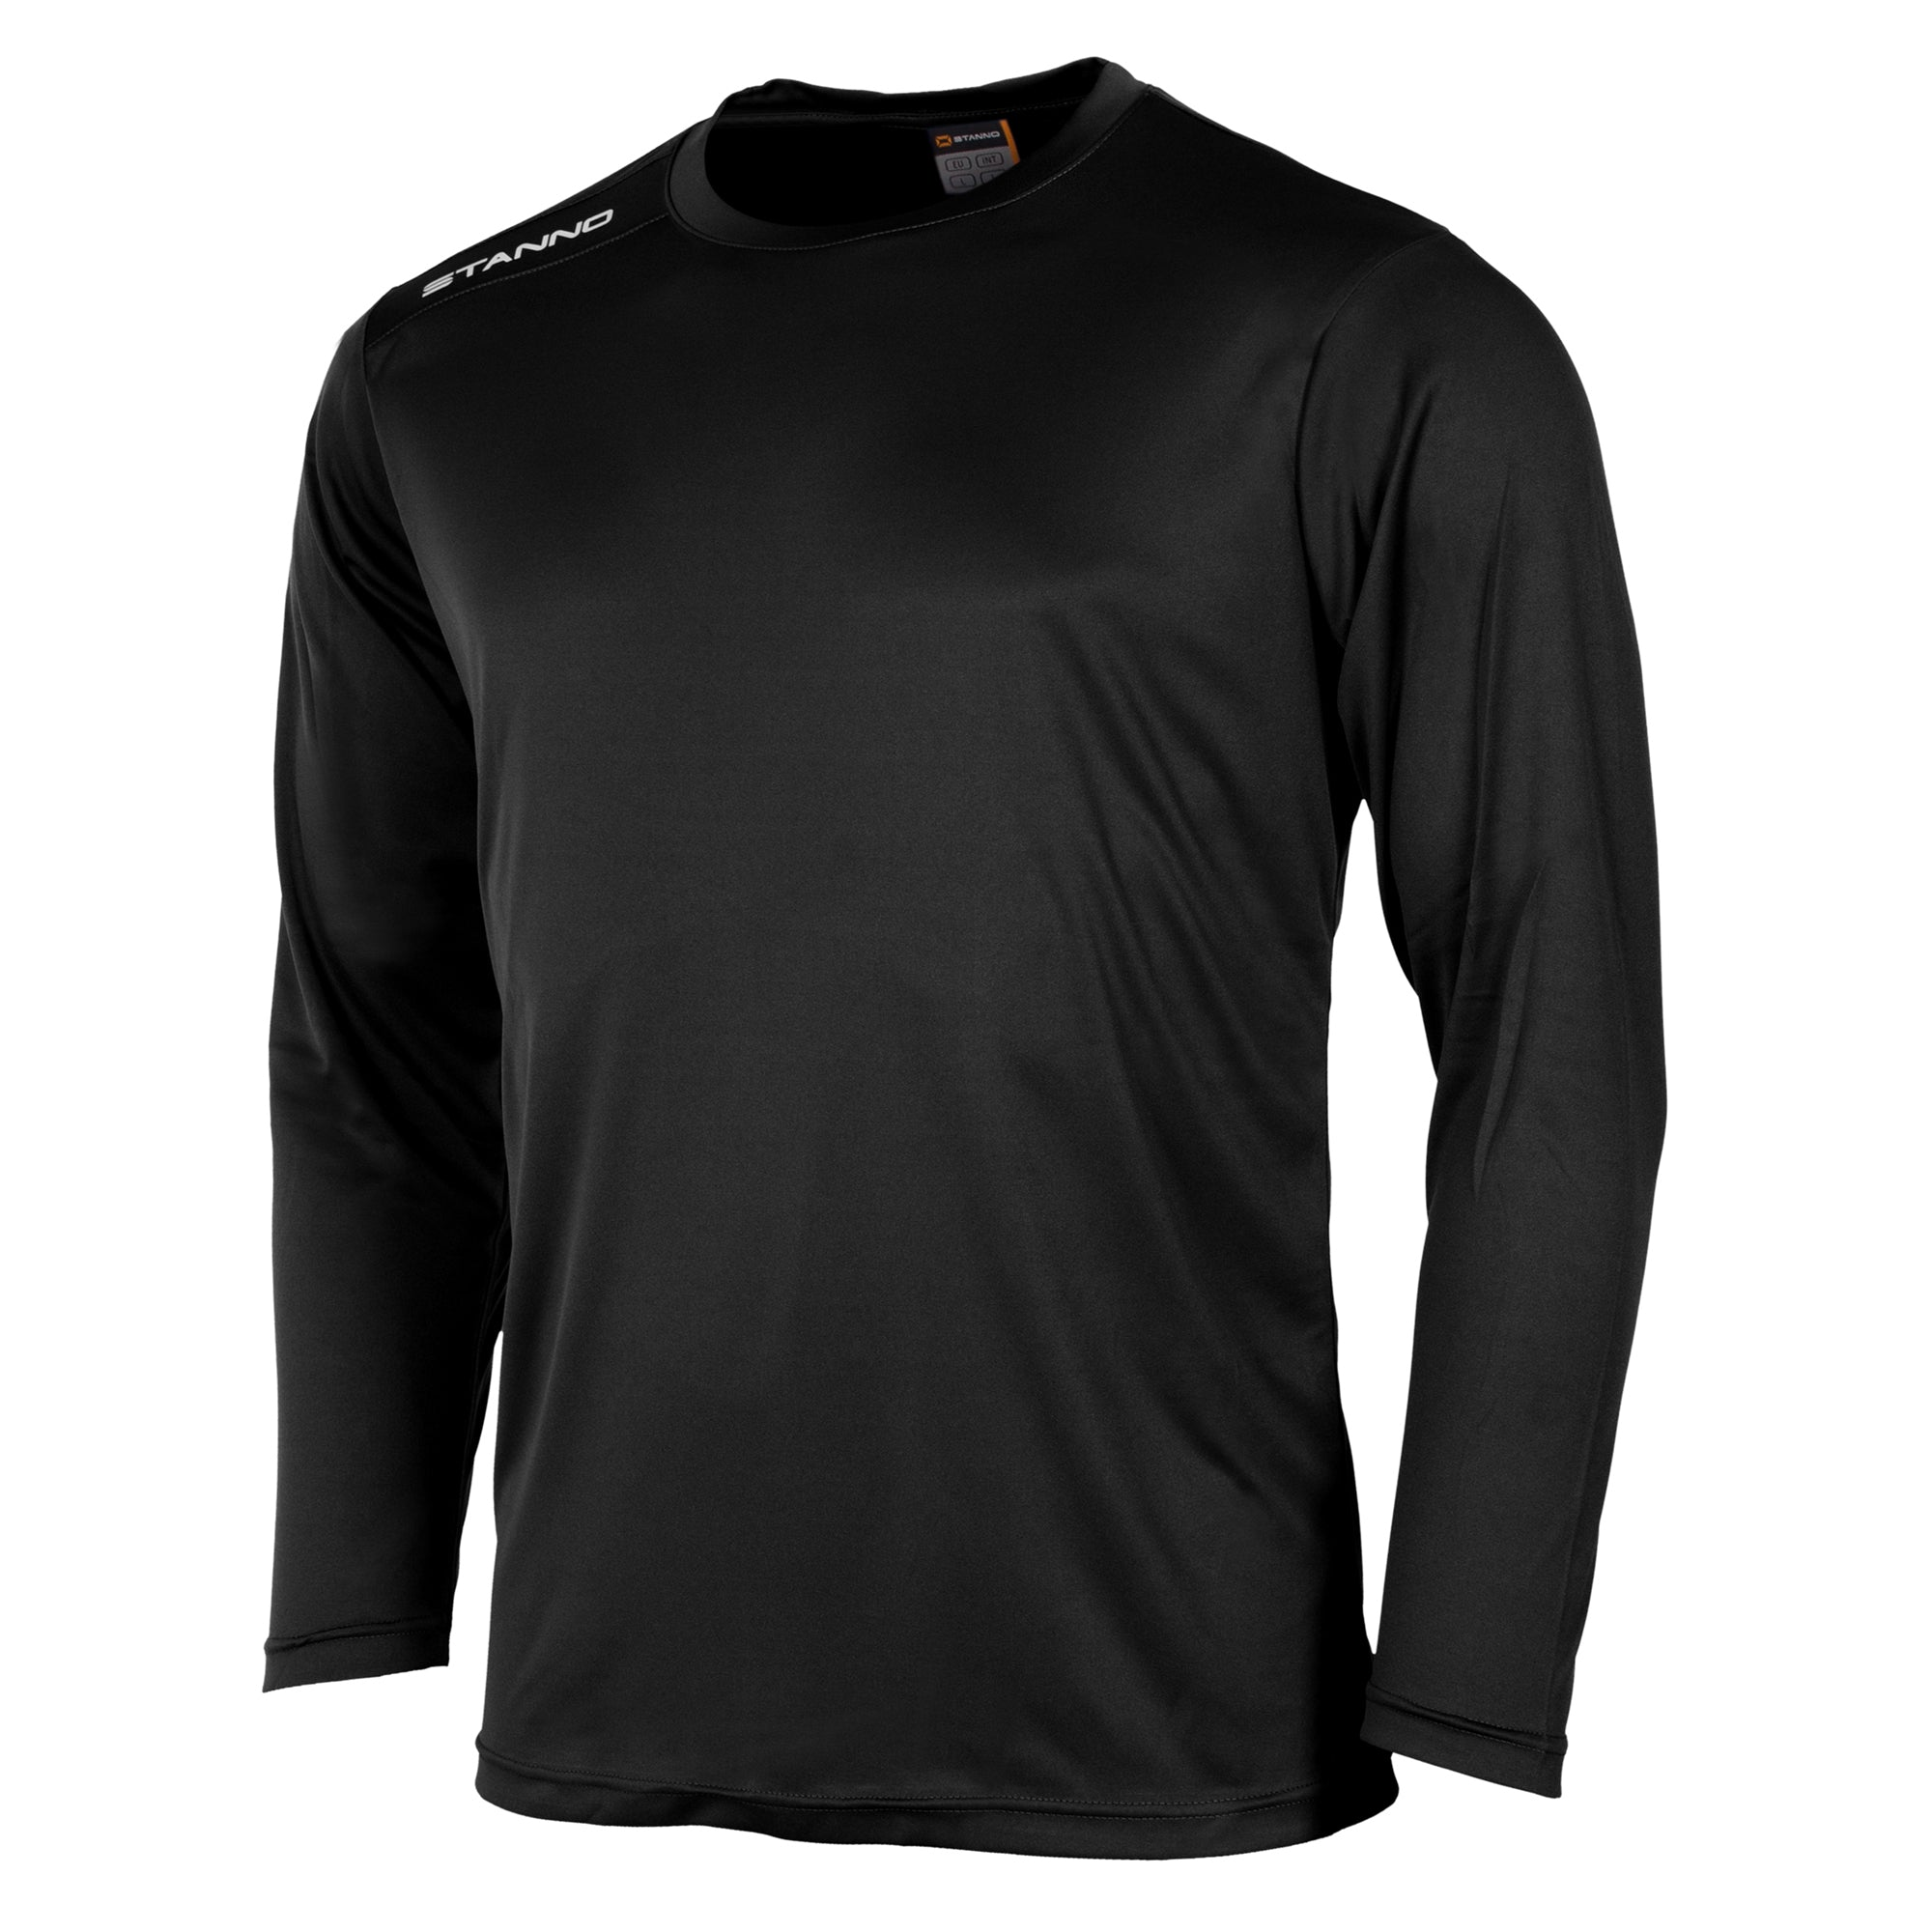 Front of Stanno Field long sleeve shirt in black with white text logo on right shoulder